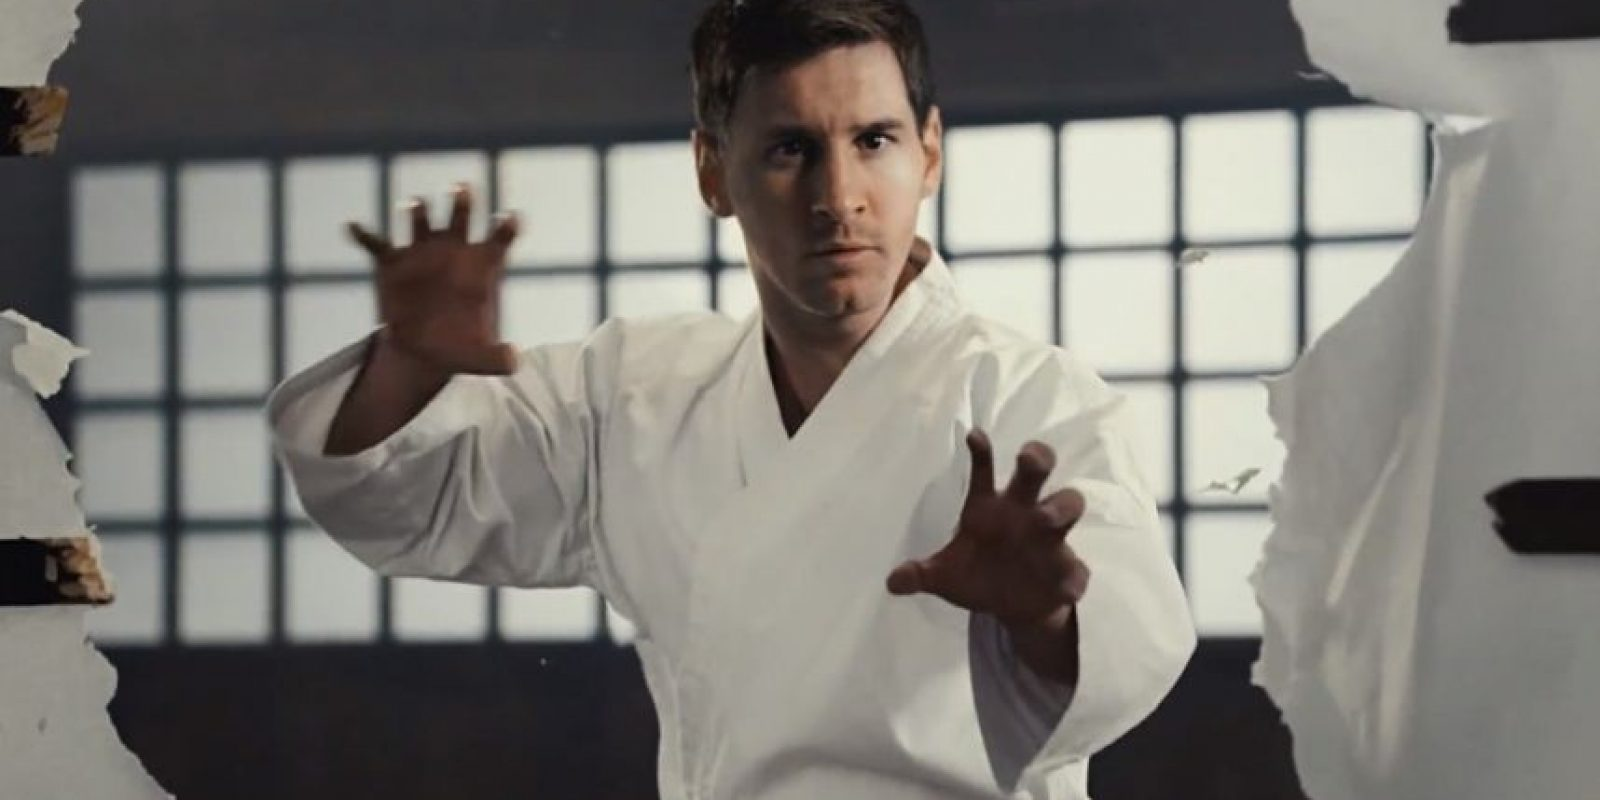 Leo Messi como karateka. Foto: Barcelona / Qatar Airways